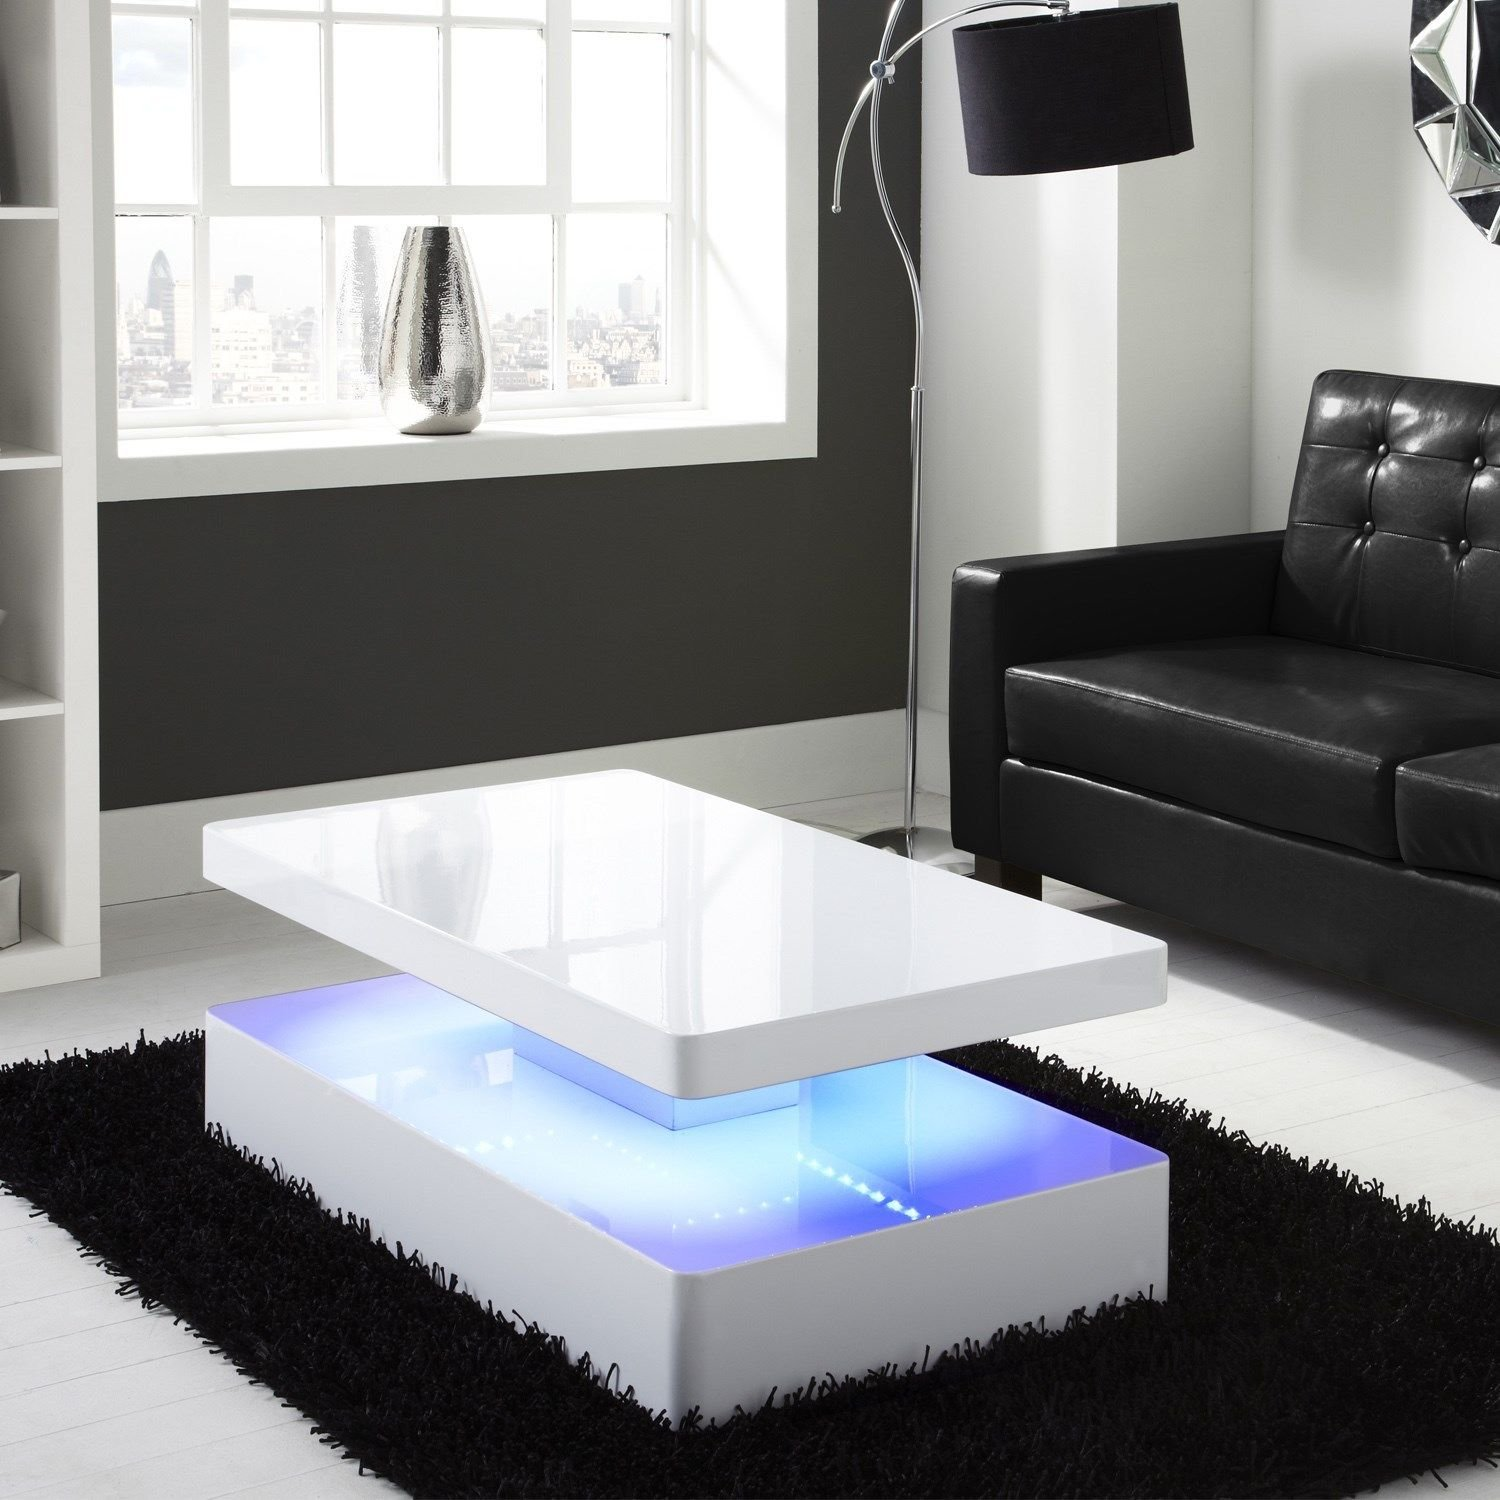 Tiffany Black High Gloss Rectangular Coffee Table with LED